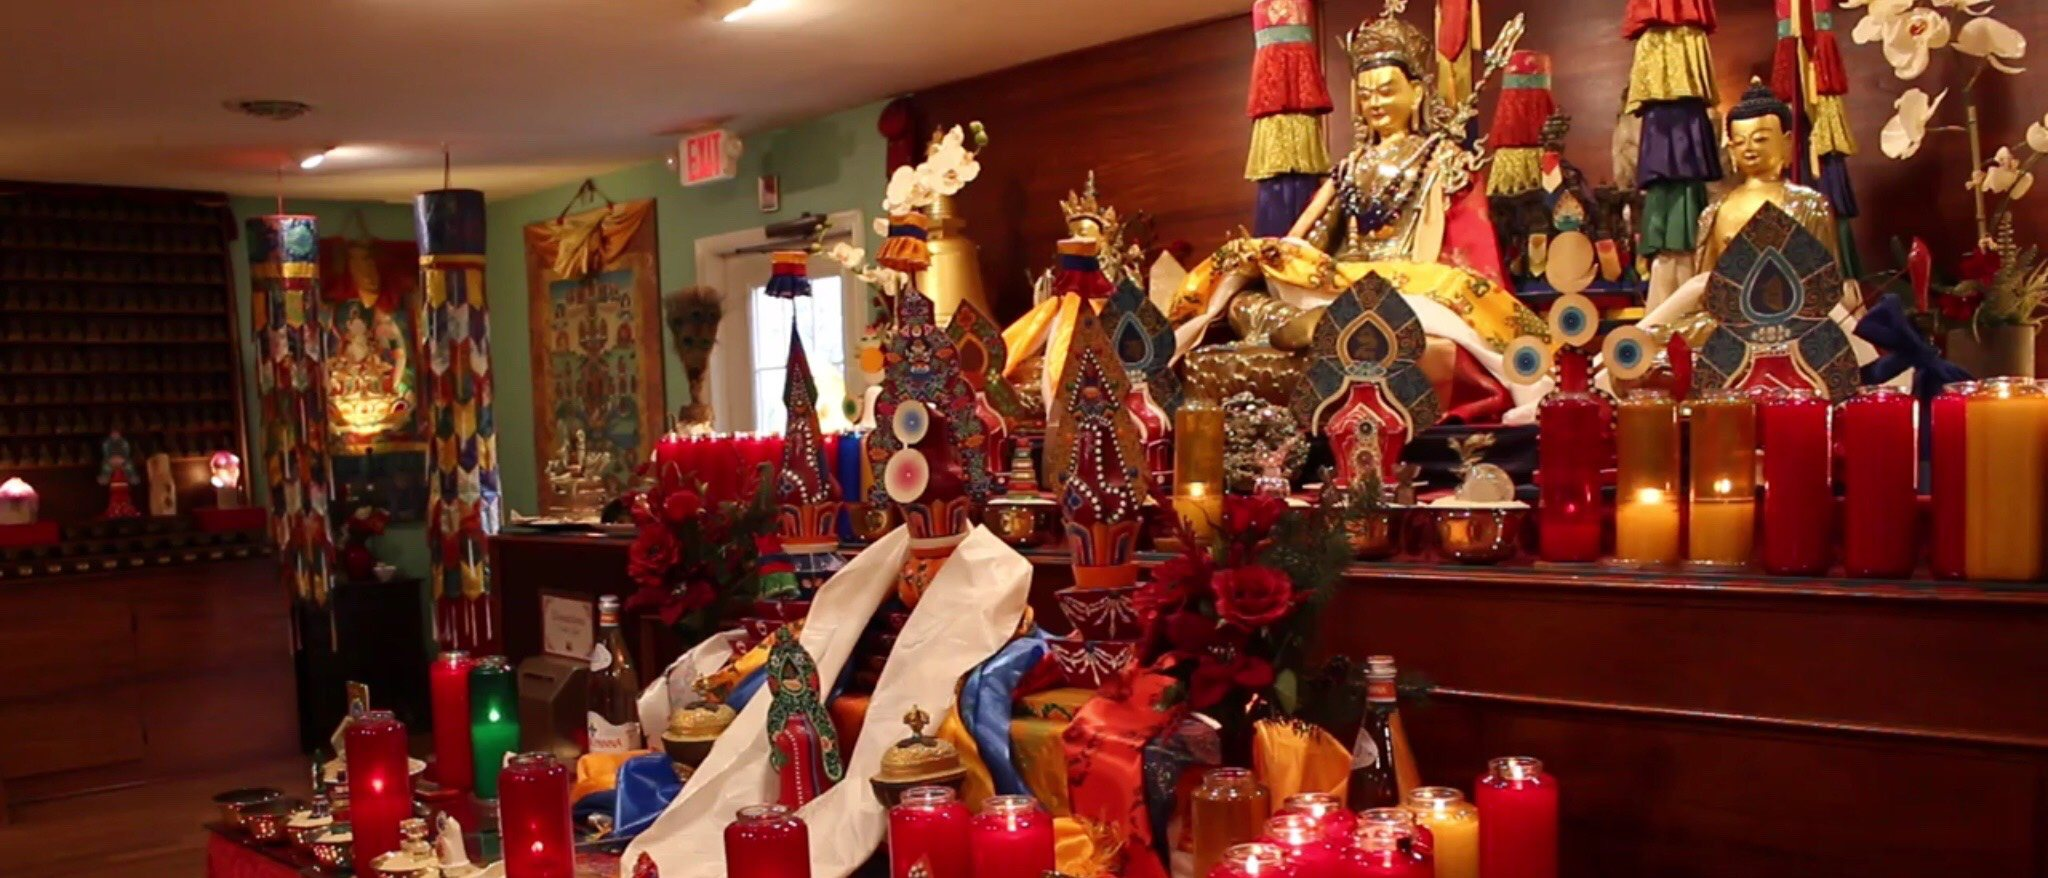 setting with buddha statues and many candles